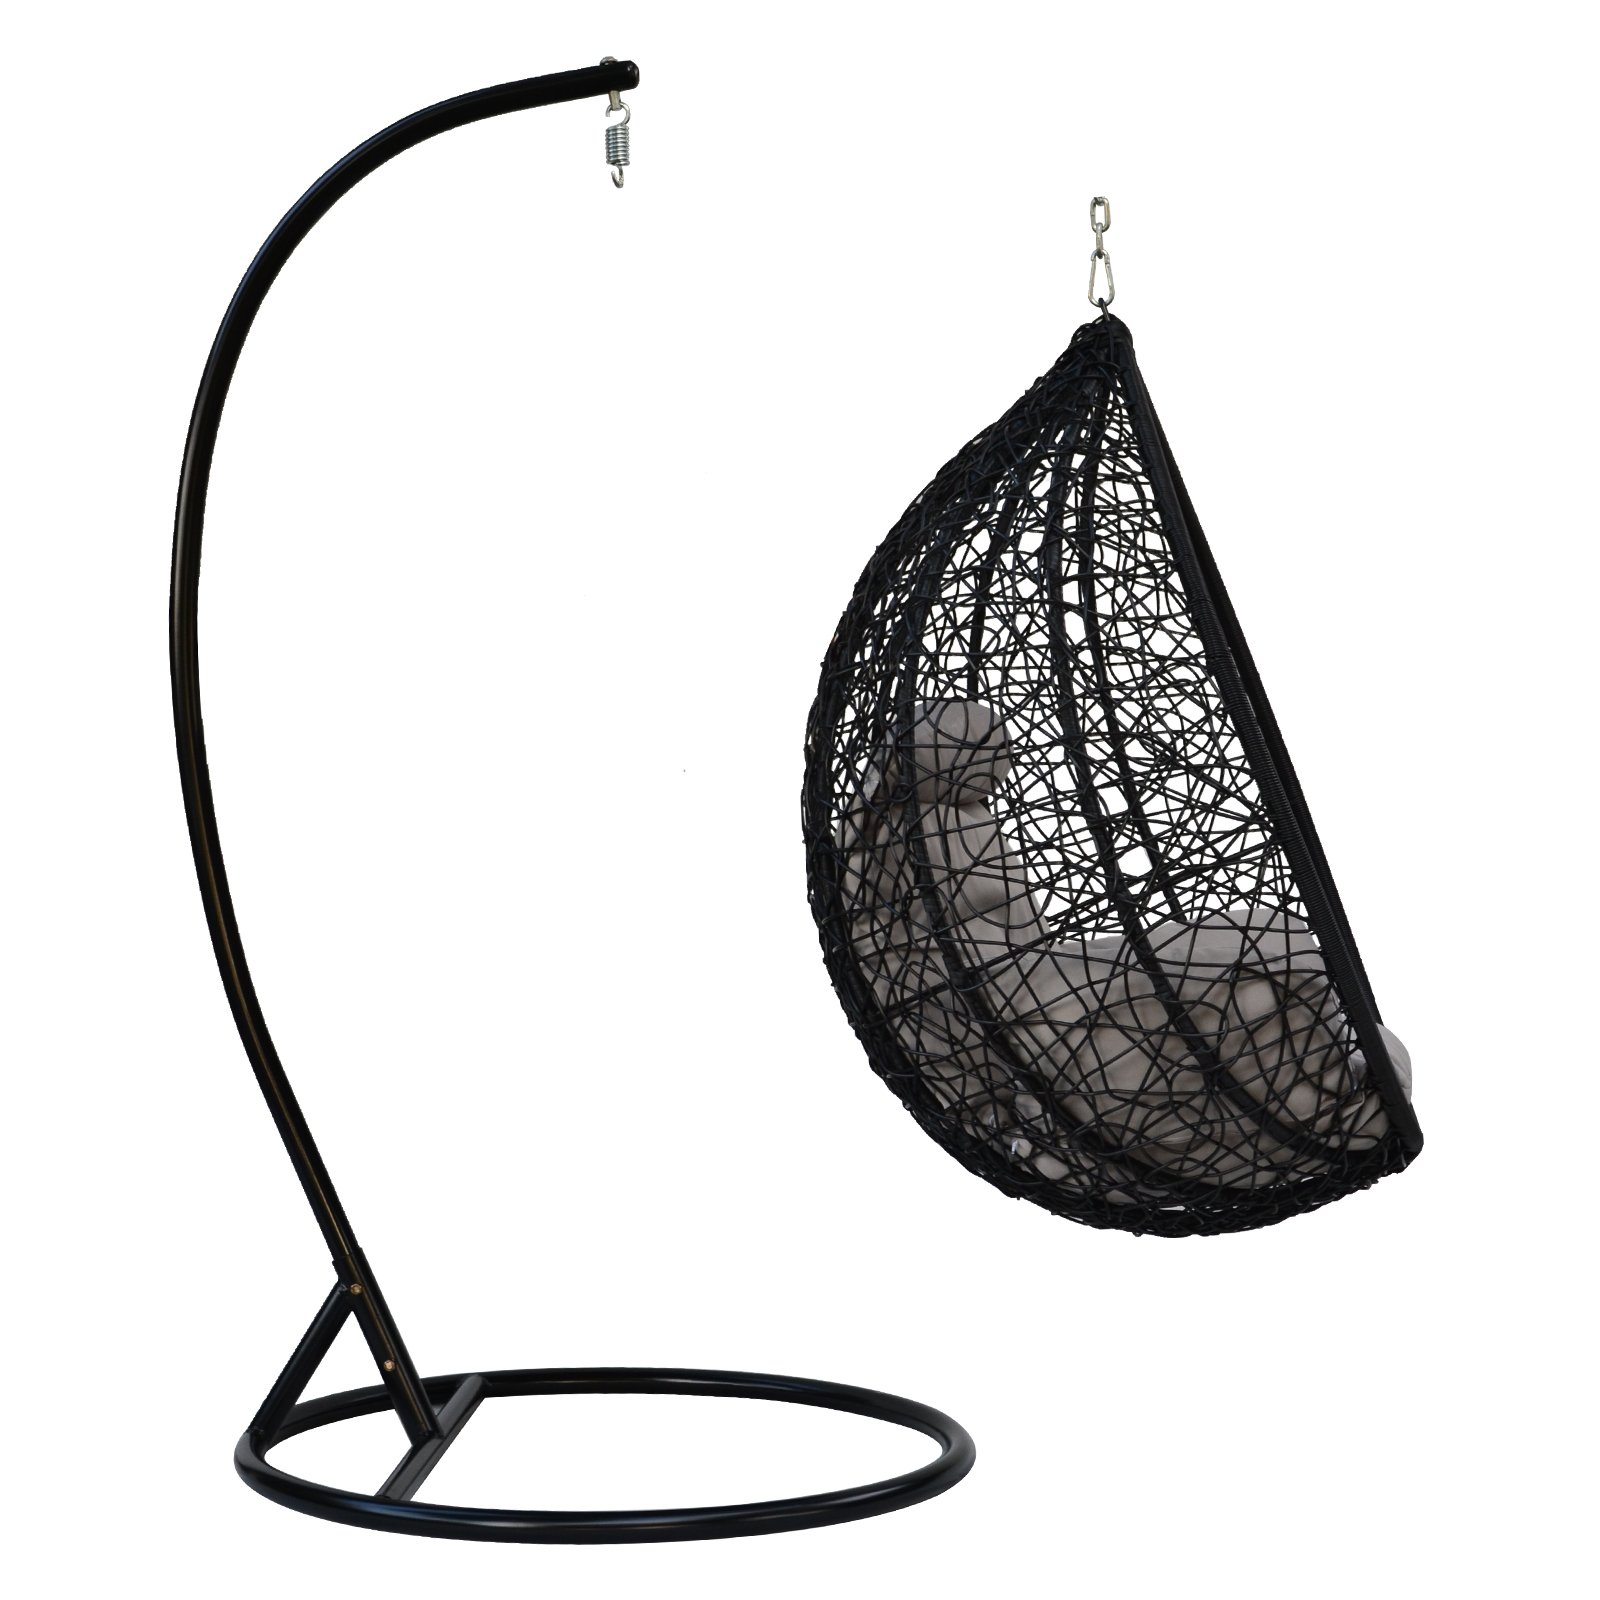 hanging wicker egg chair with stand swivel subnautica outdoor patio furniture black swing rattan